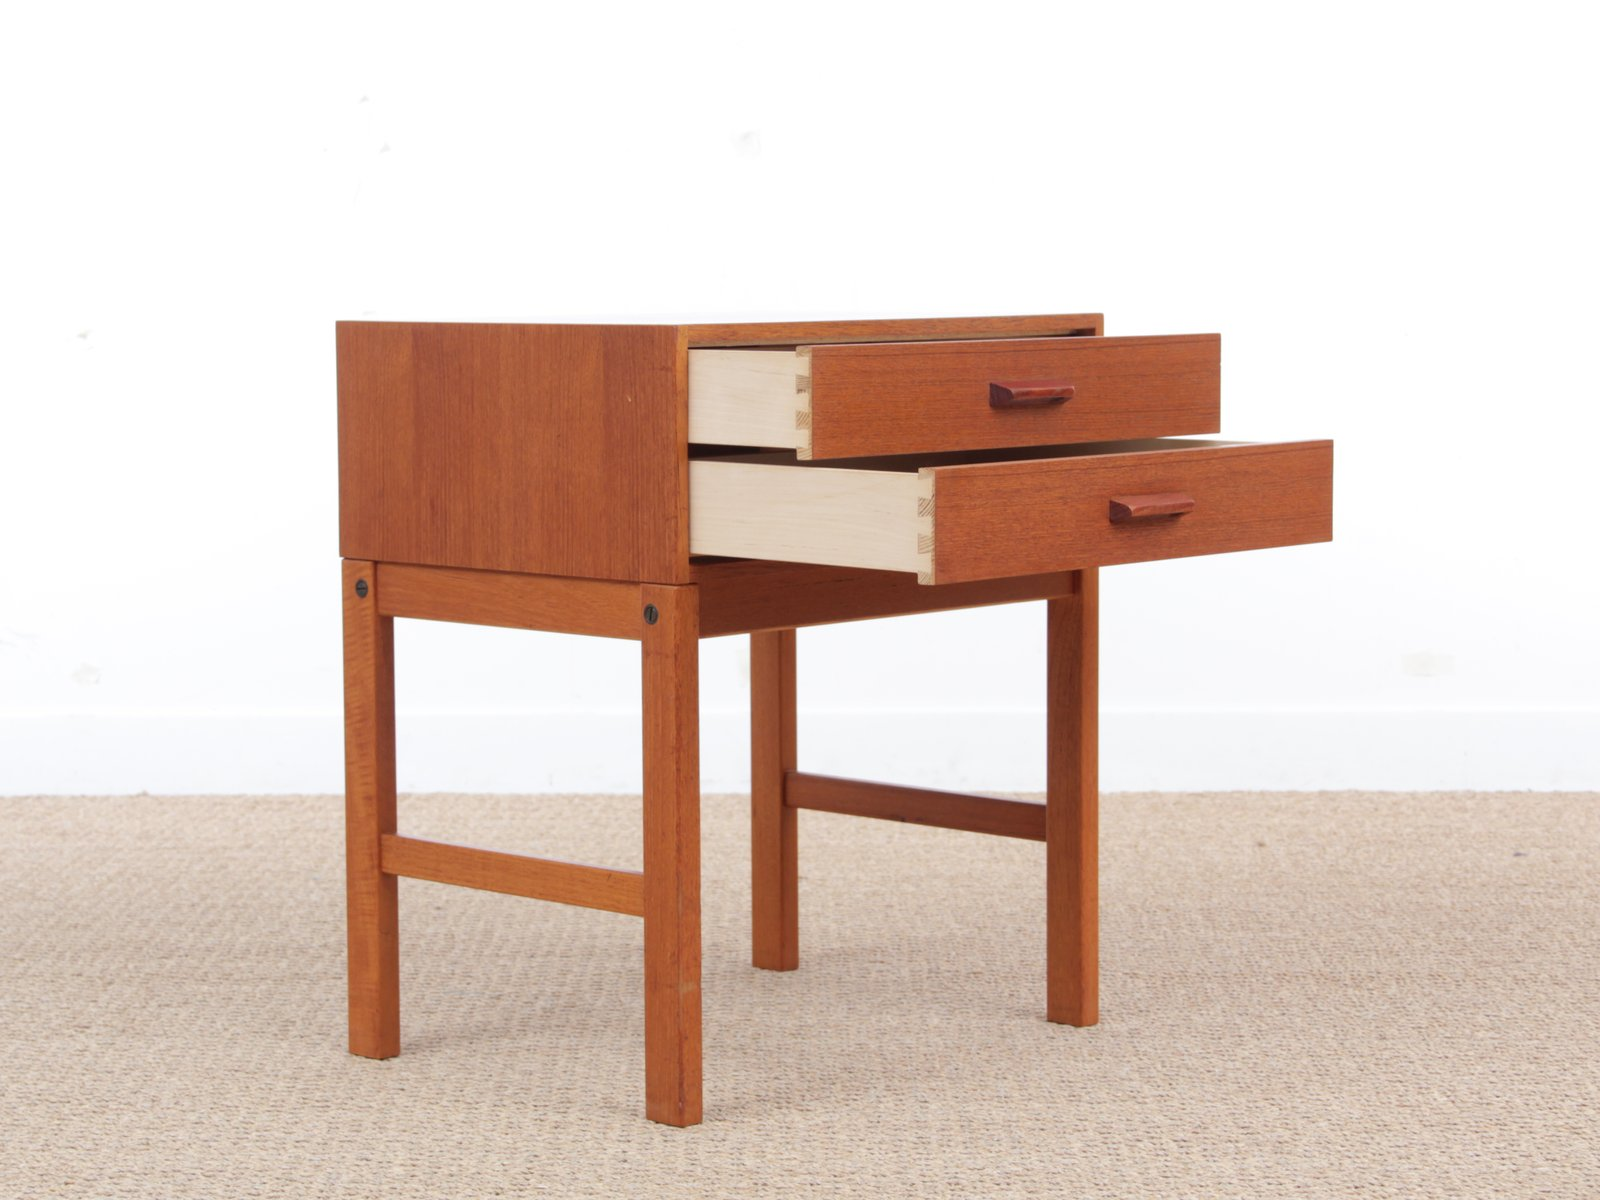 Mid century modern scandinavian hall furniture in teak for Mid century modern danish furniture